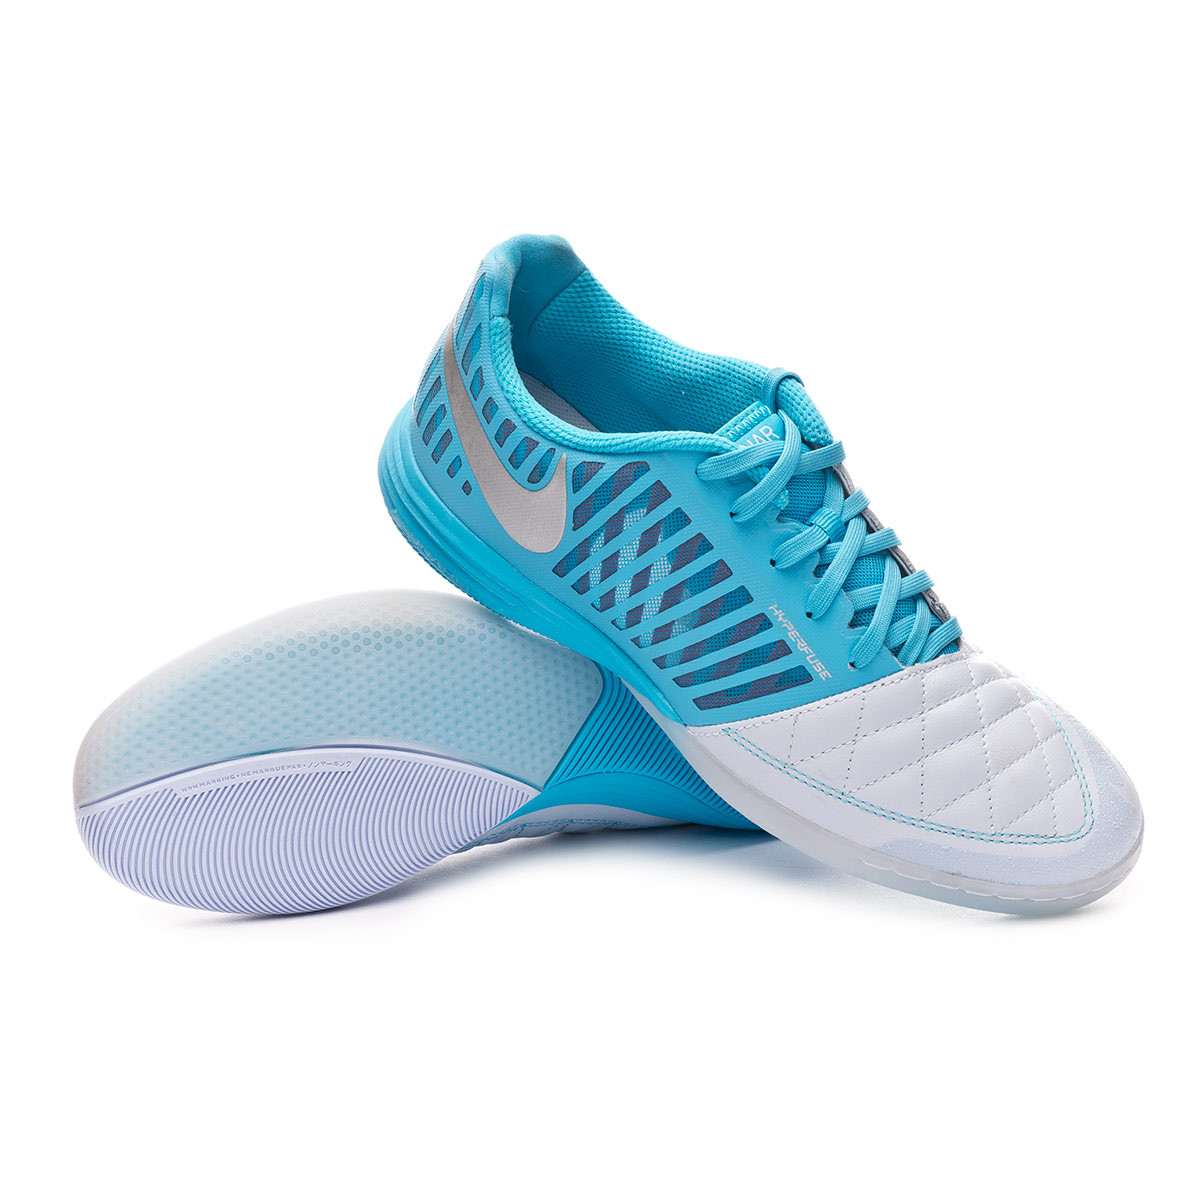 reputable site 1aaad 389d7 Futsal Boot Nike Lunar Gato II IC Half blue-Metallic silver-Blue fury -  Football store Fútbol Emotion